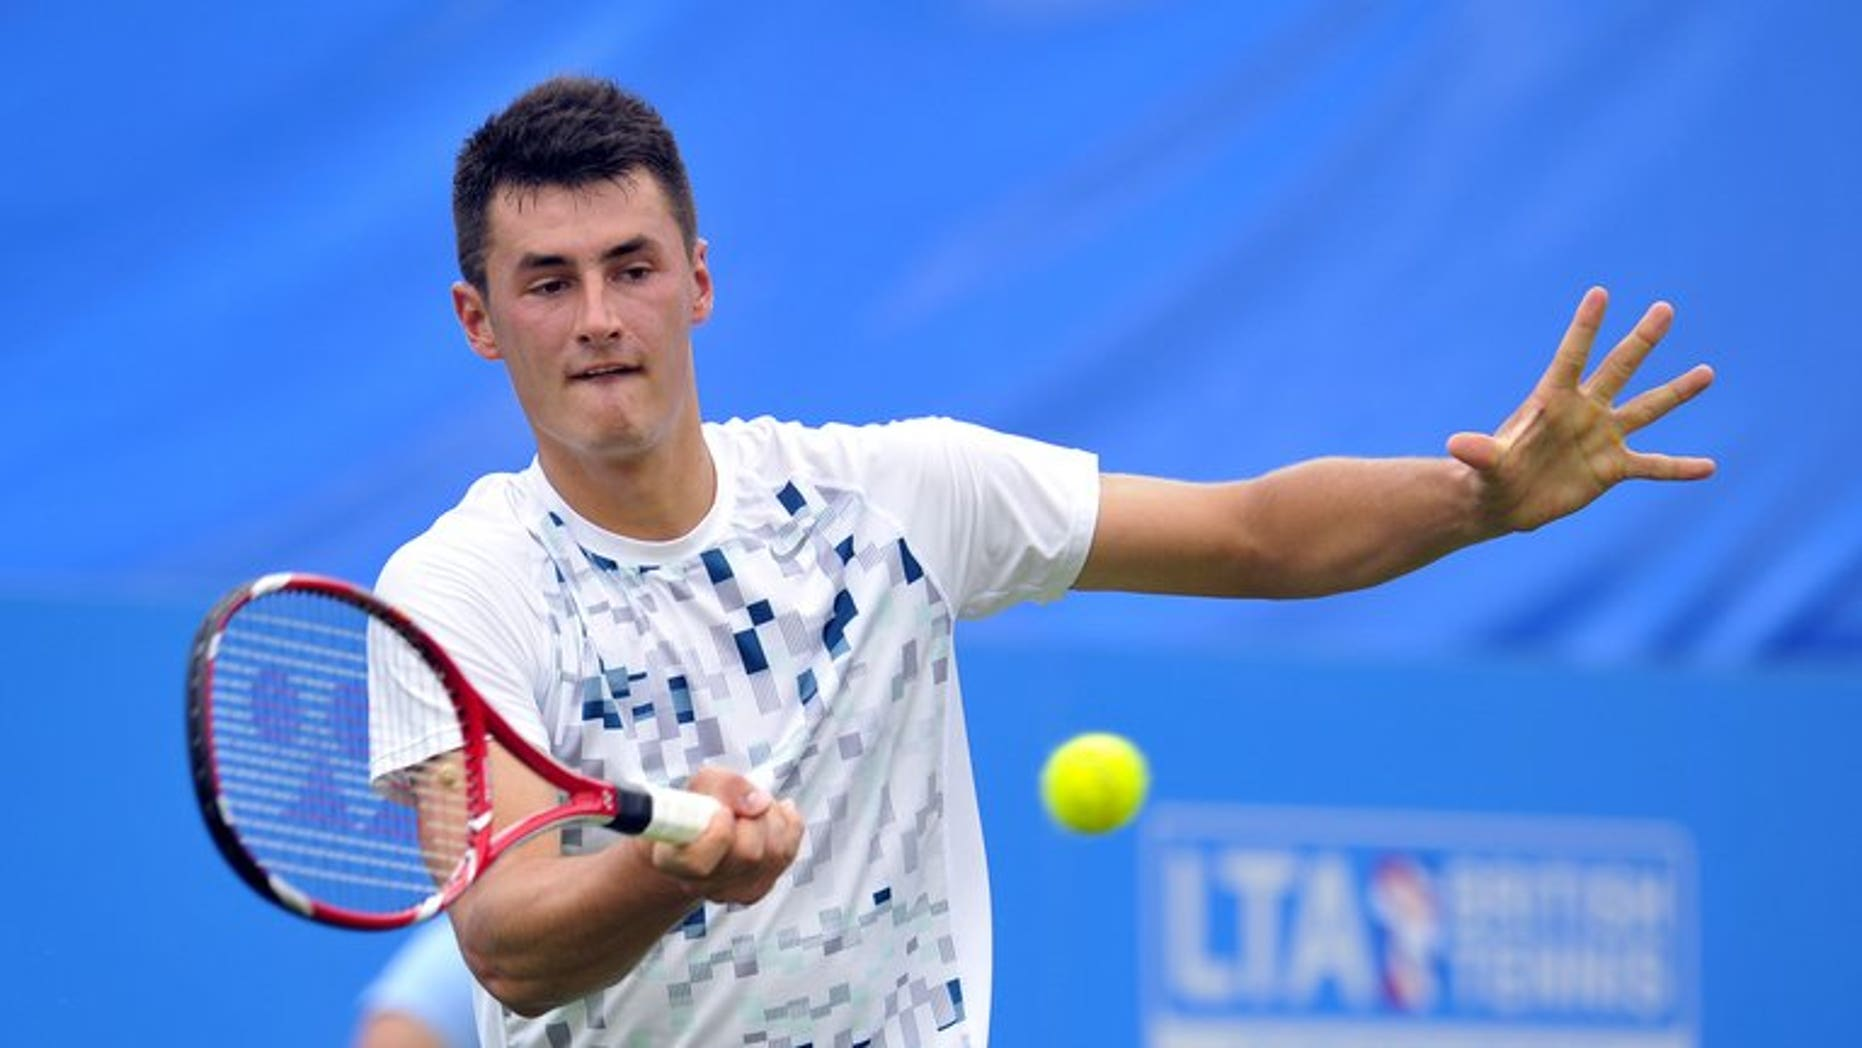 Australia???s Bernard Tomic plays against Britain???s James Ward during the AEGON International tennis tournament in Eastbourne on June 18, 2013. Tomic has recharged his form on grass, shaking off last week's hamstring concern to post a 6-3, 6-4 first round win over Ward at the ATP-WTA Eastbourne International.